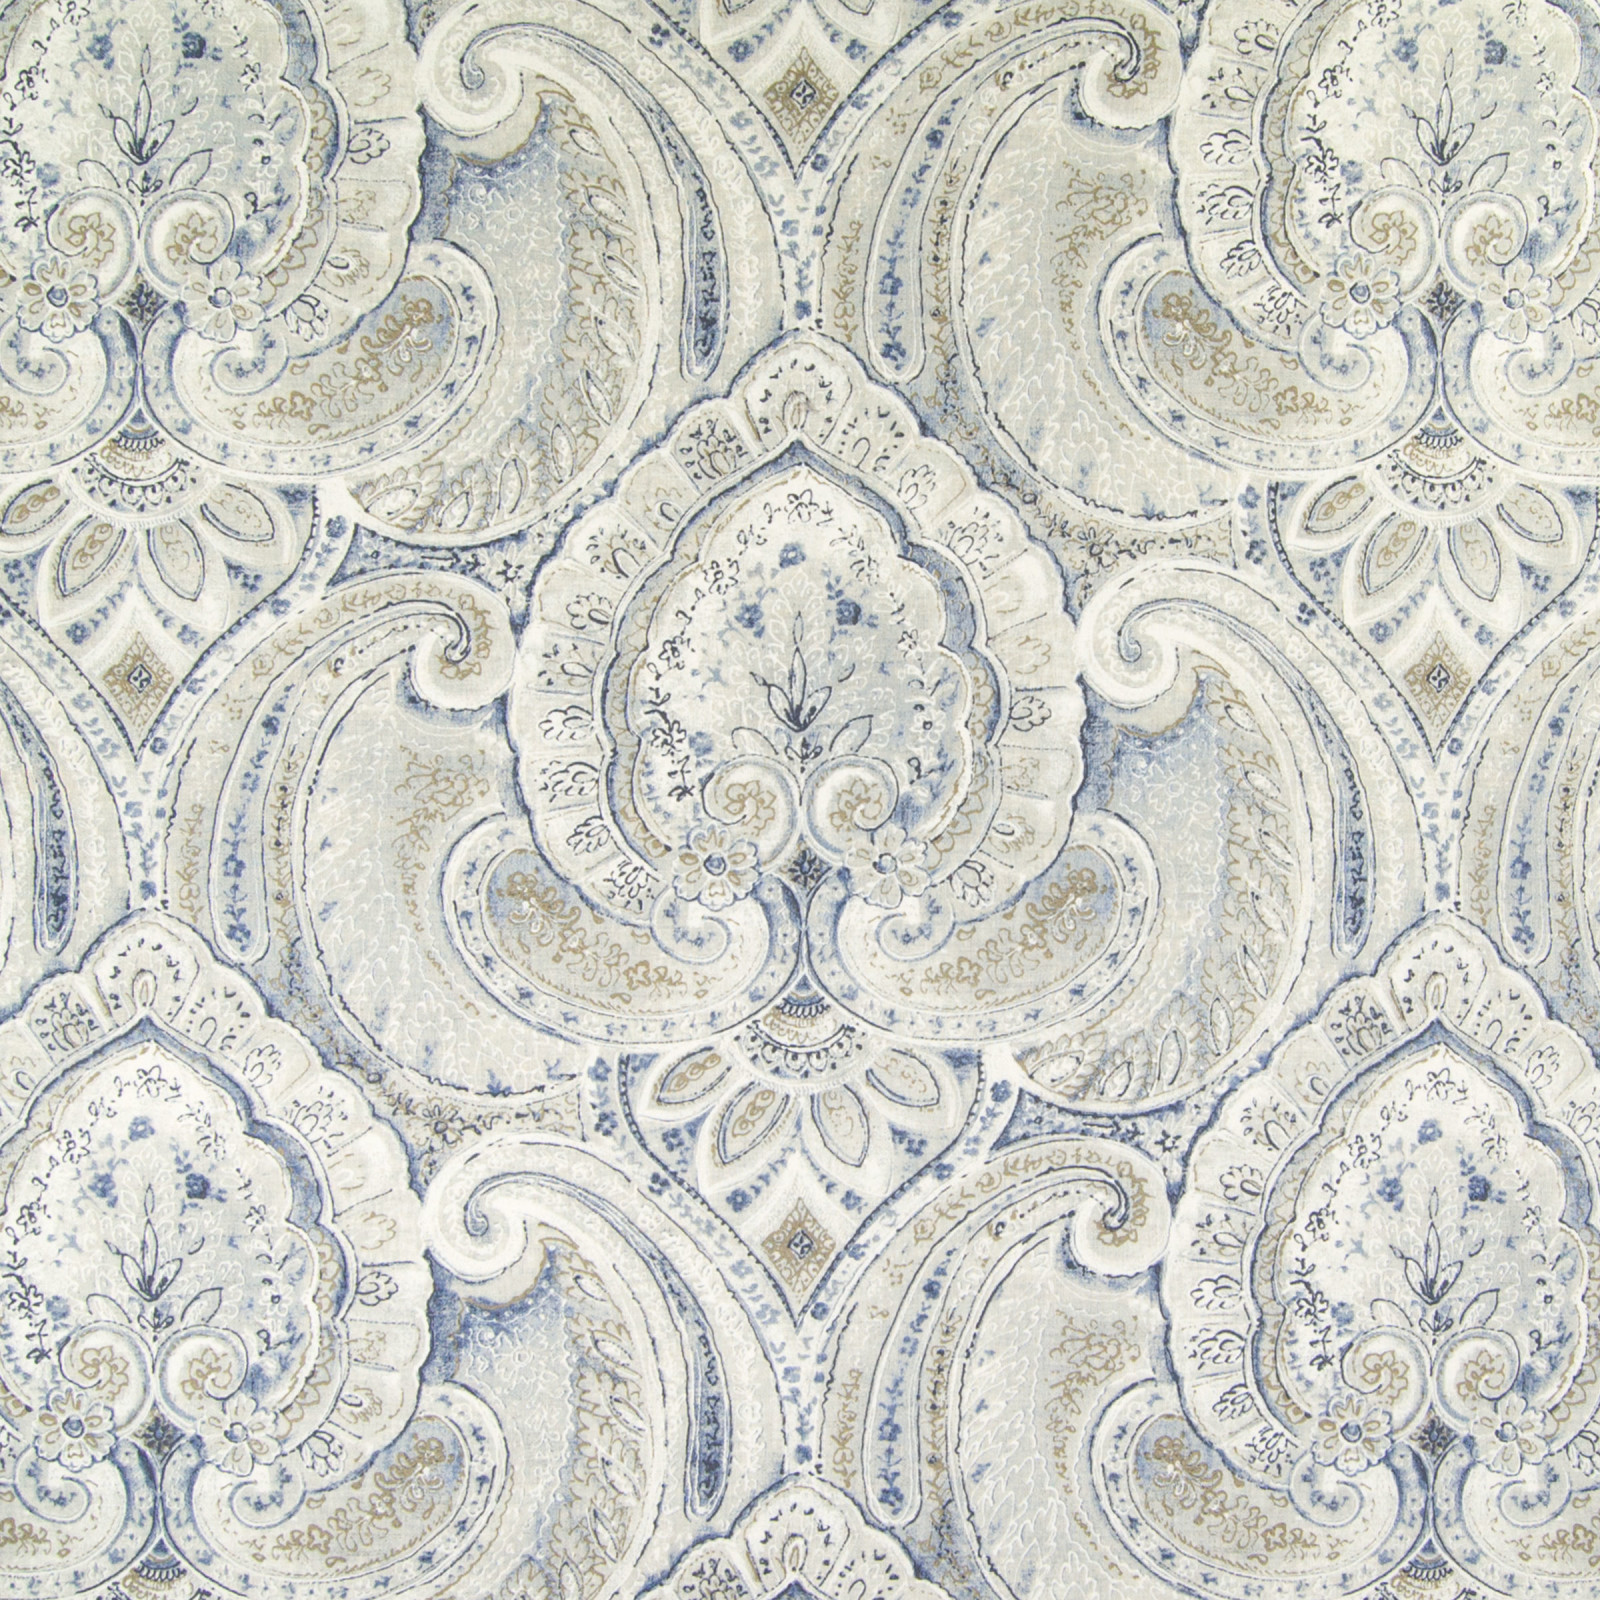 Delft Blue Floral Cotton Upholstery Fabric